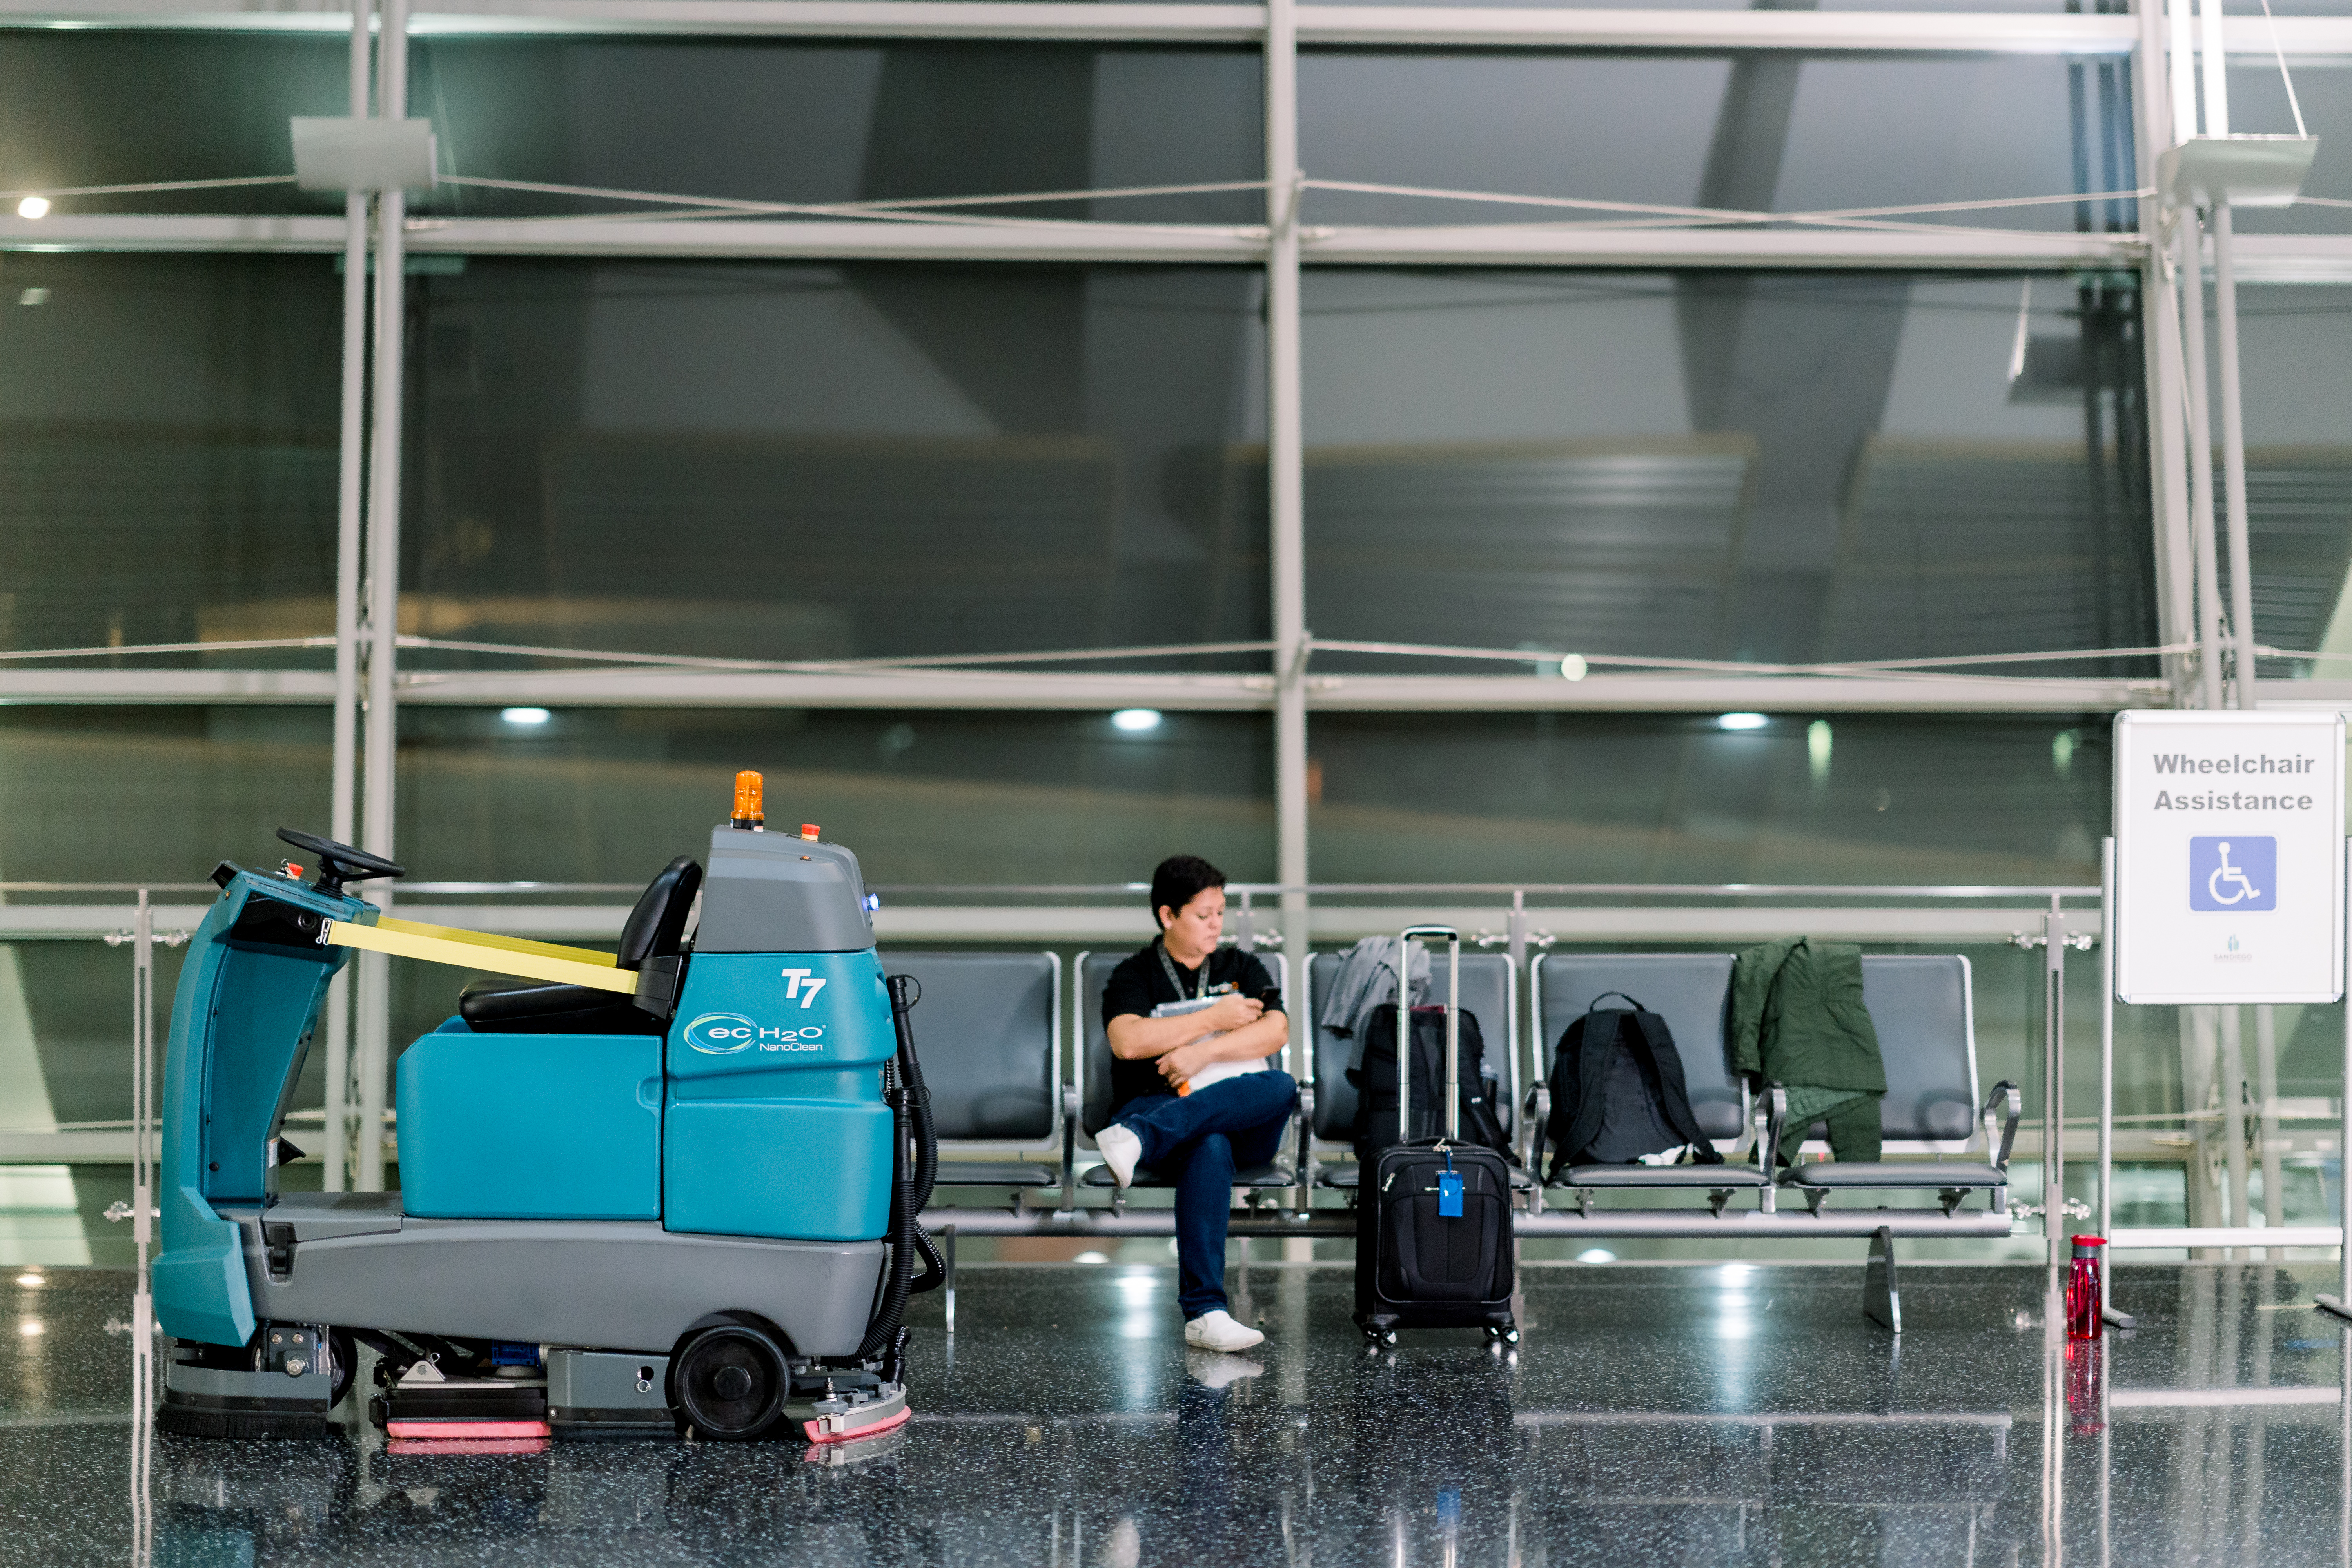 Fleet of cleaning robots to keep airports safe